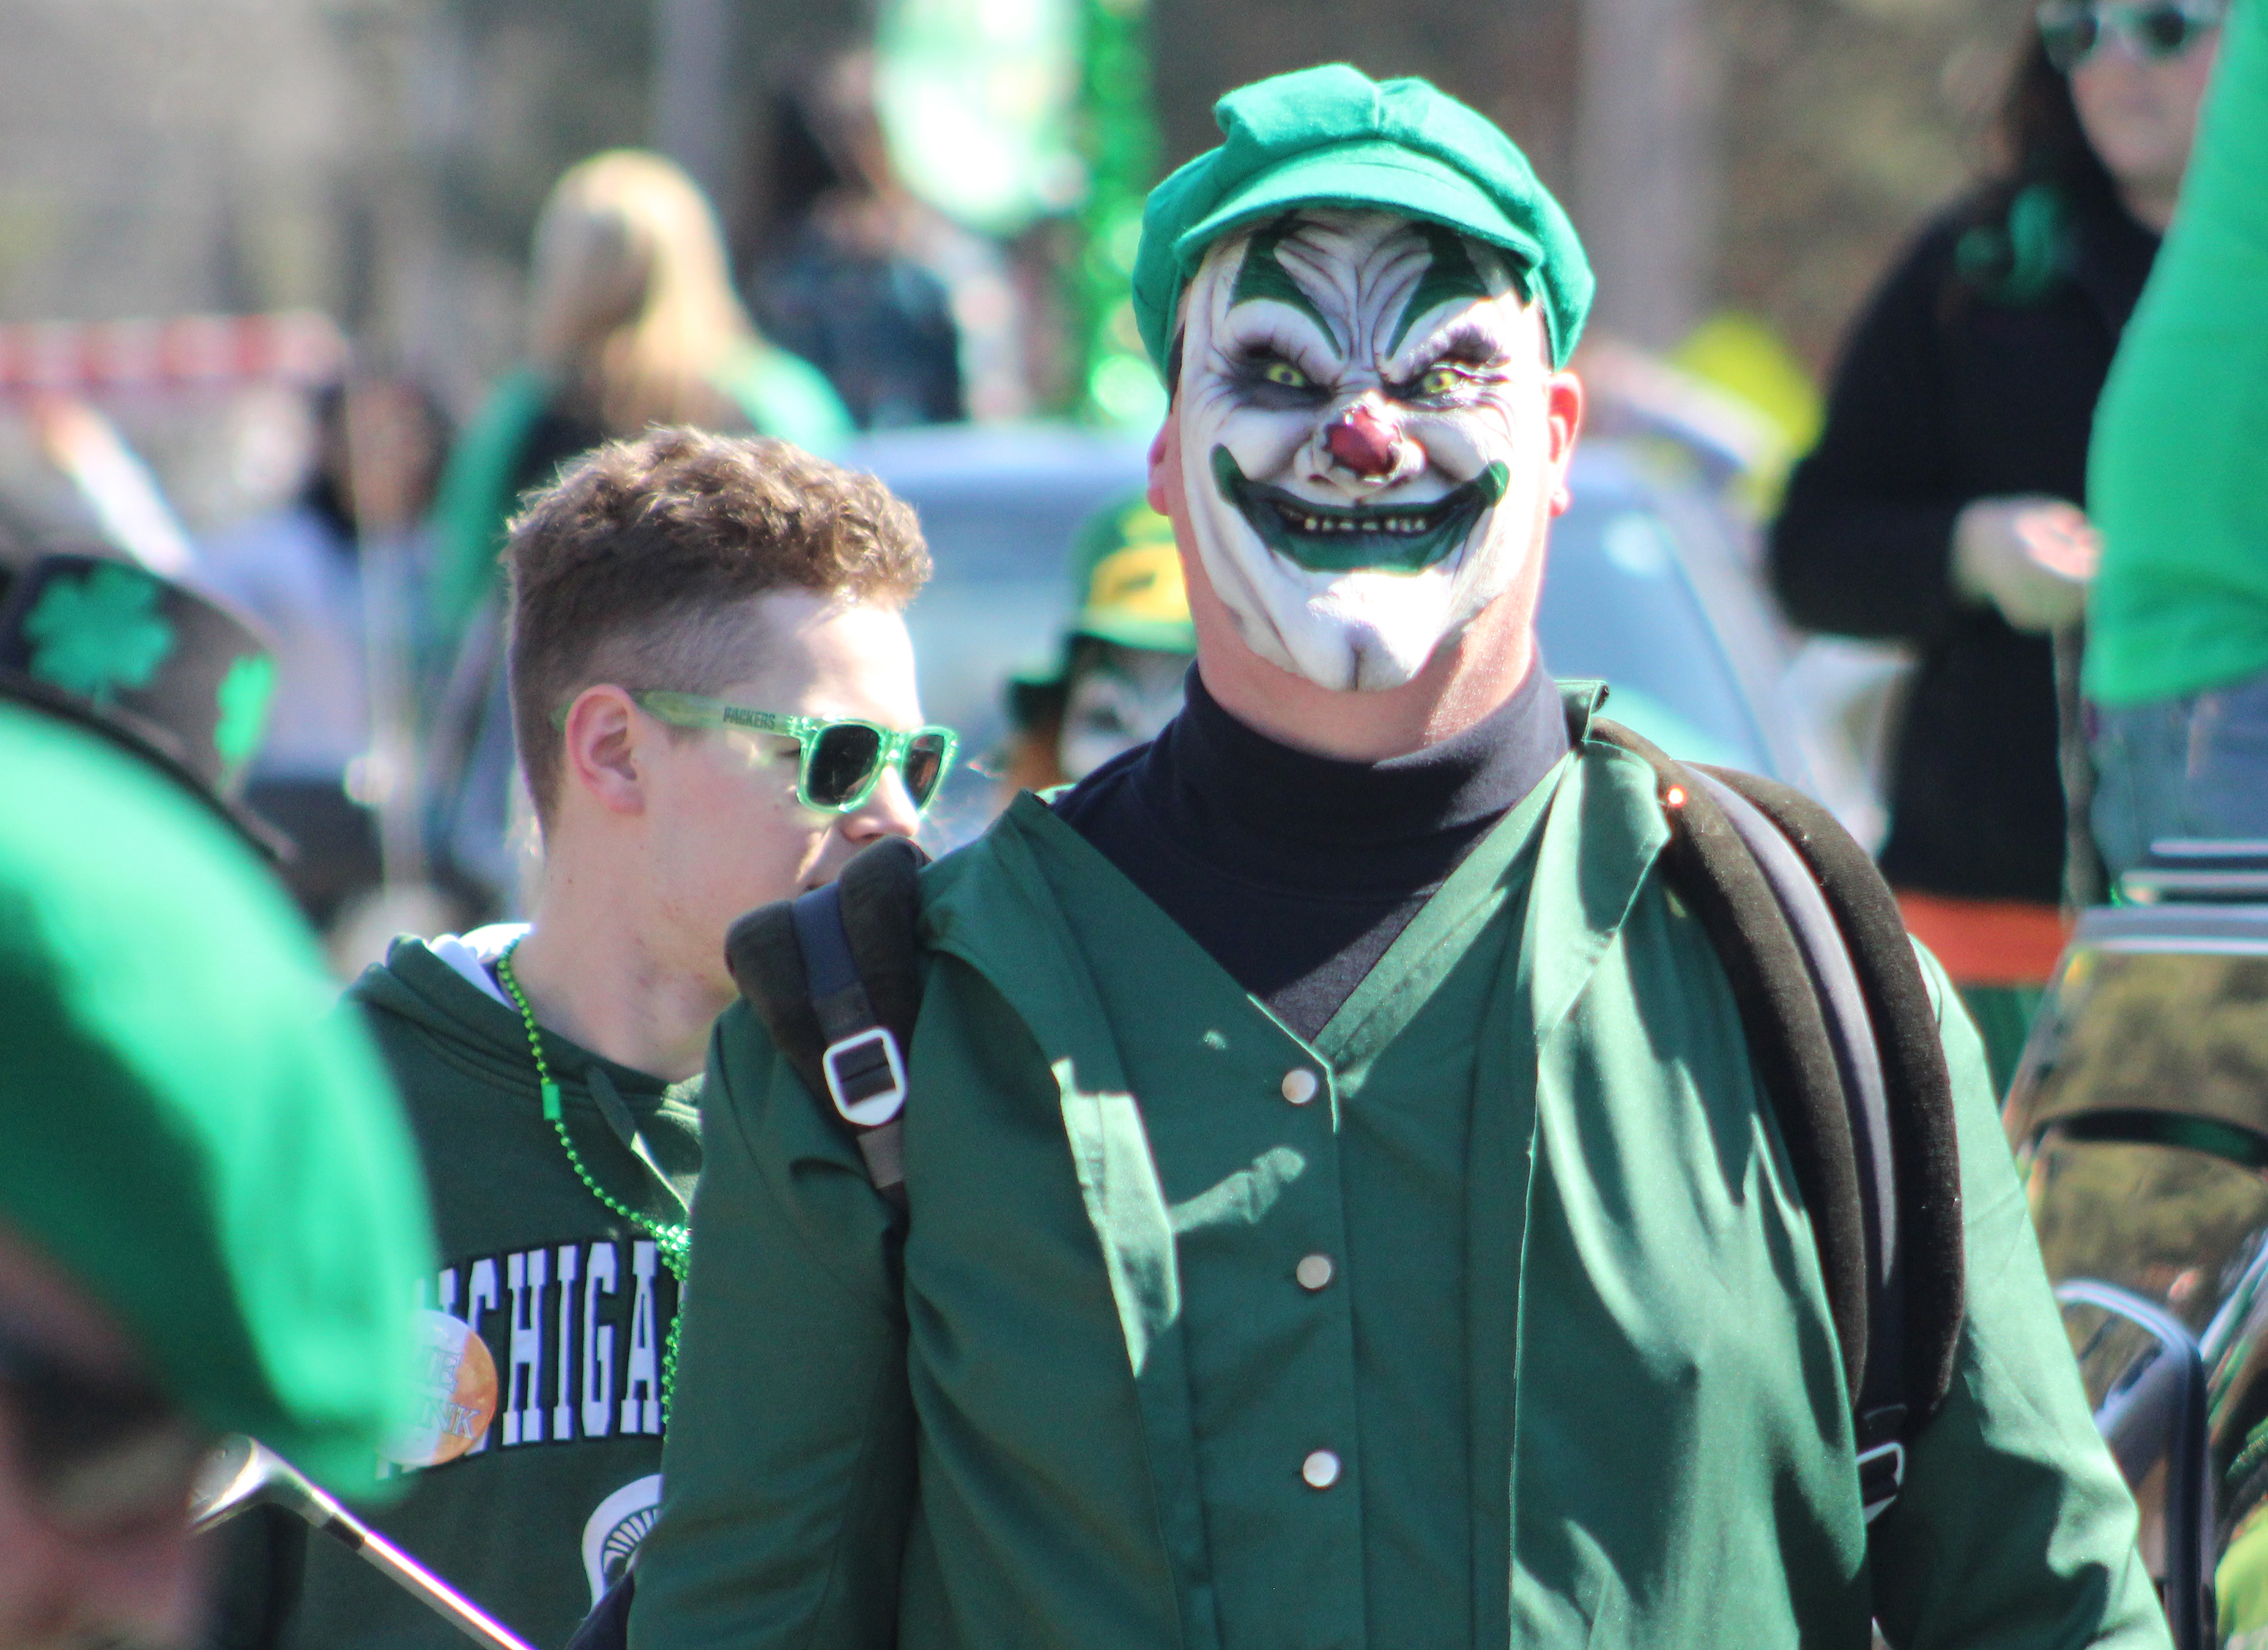 A naughty leprechaun provided a good scare to parade-goers March 13 during the Mooseyard St. Patrick's Day Parade in the Town of Wescott.(Lee Pulaski | NEW Media)